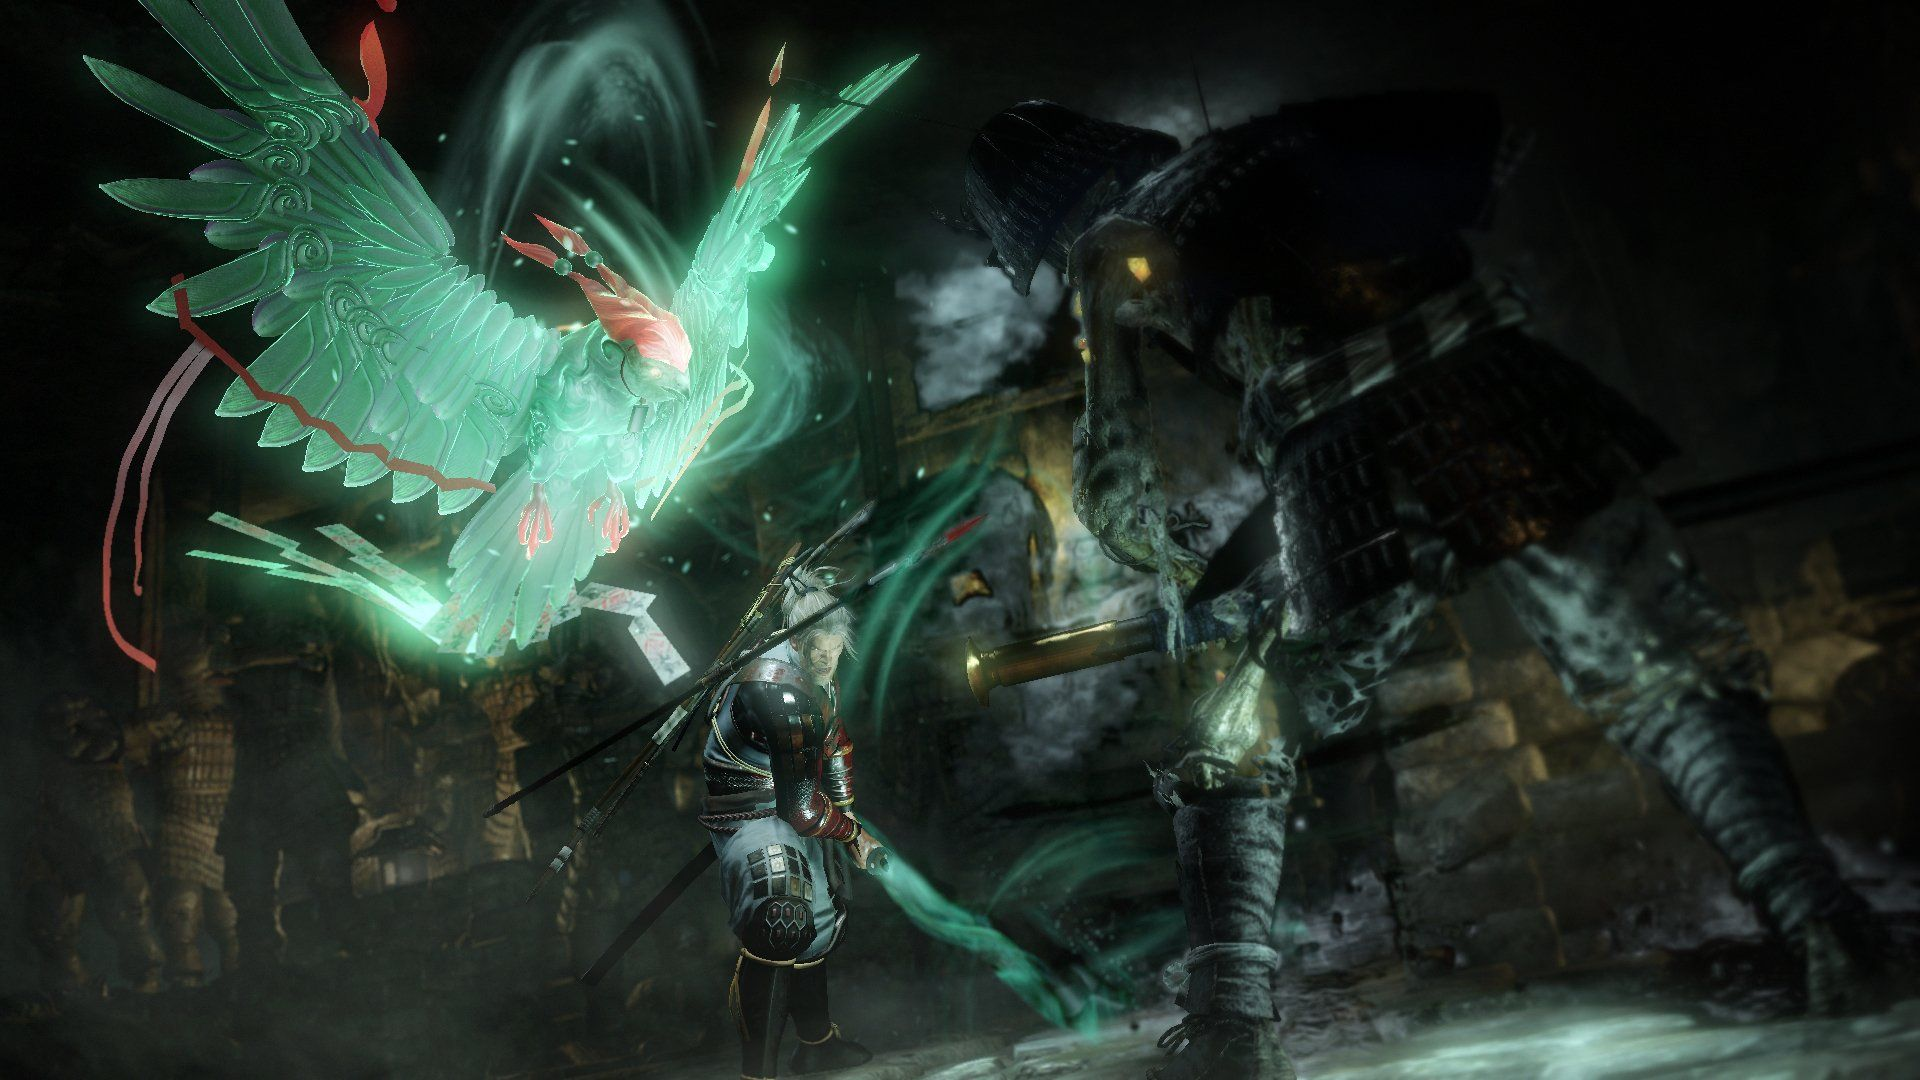 60 nioh hd wallpapers backgrounds wallpaper abyss wallpaper 60 nioh hd wallpapers backgrounds wallpaper abyss voltagebd Images